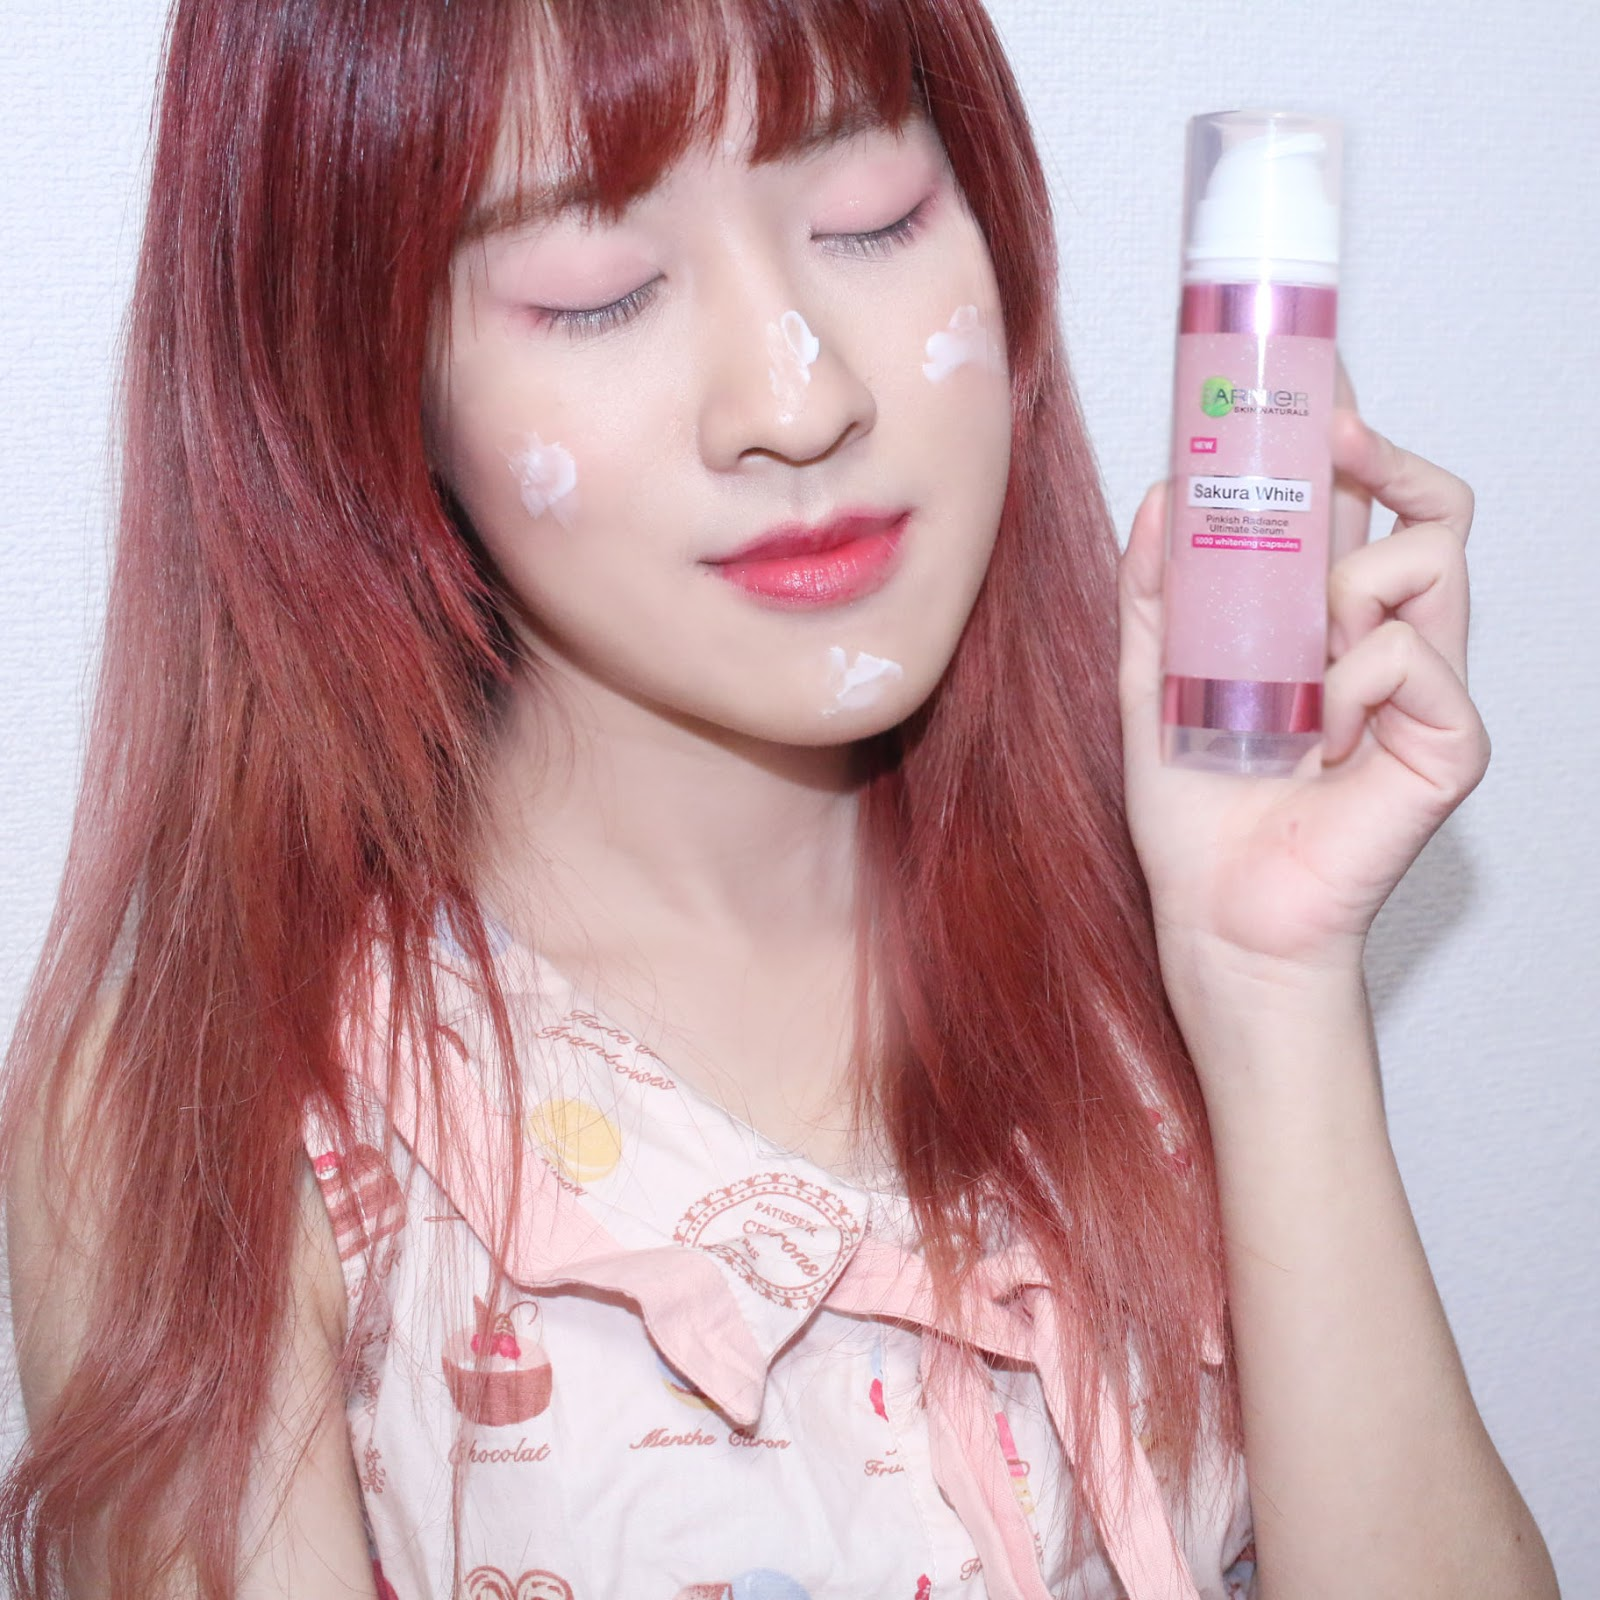 Skincare review blog indonesia